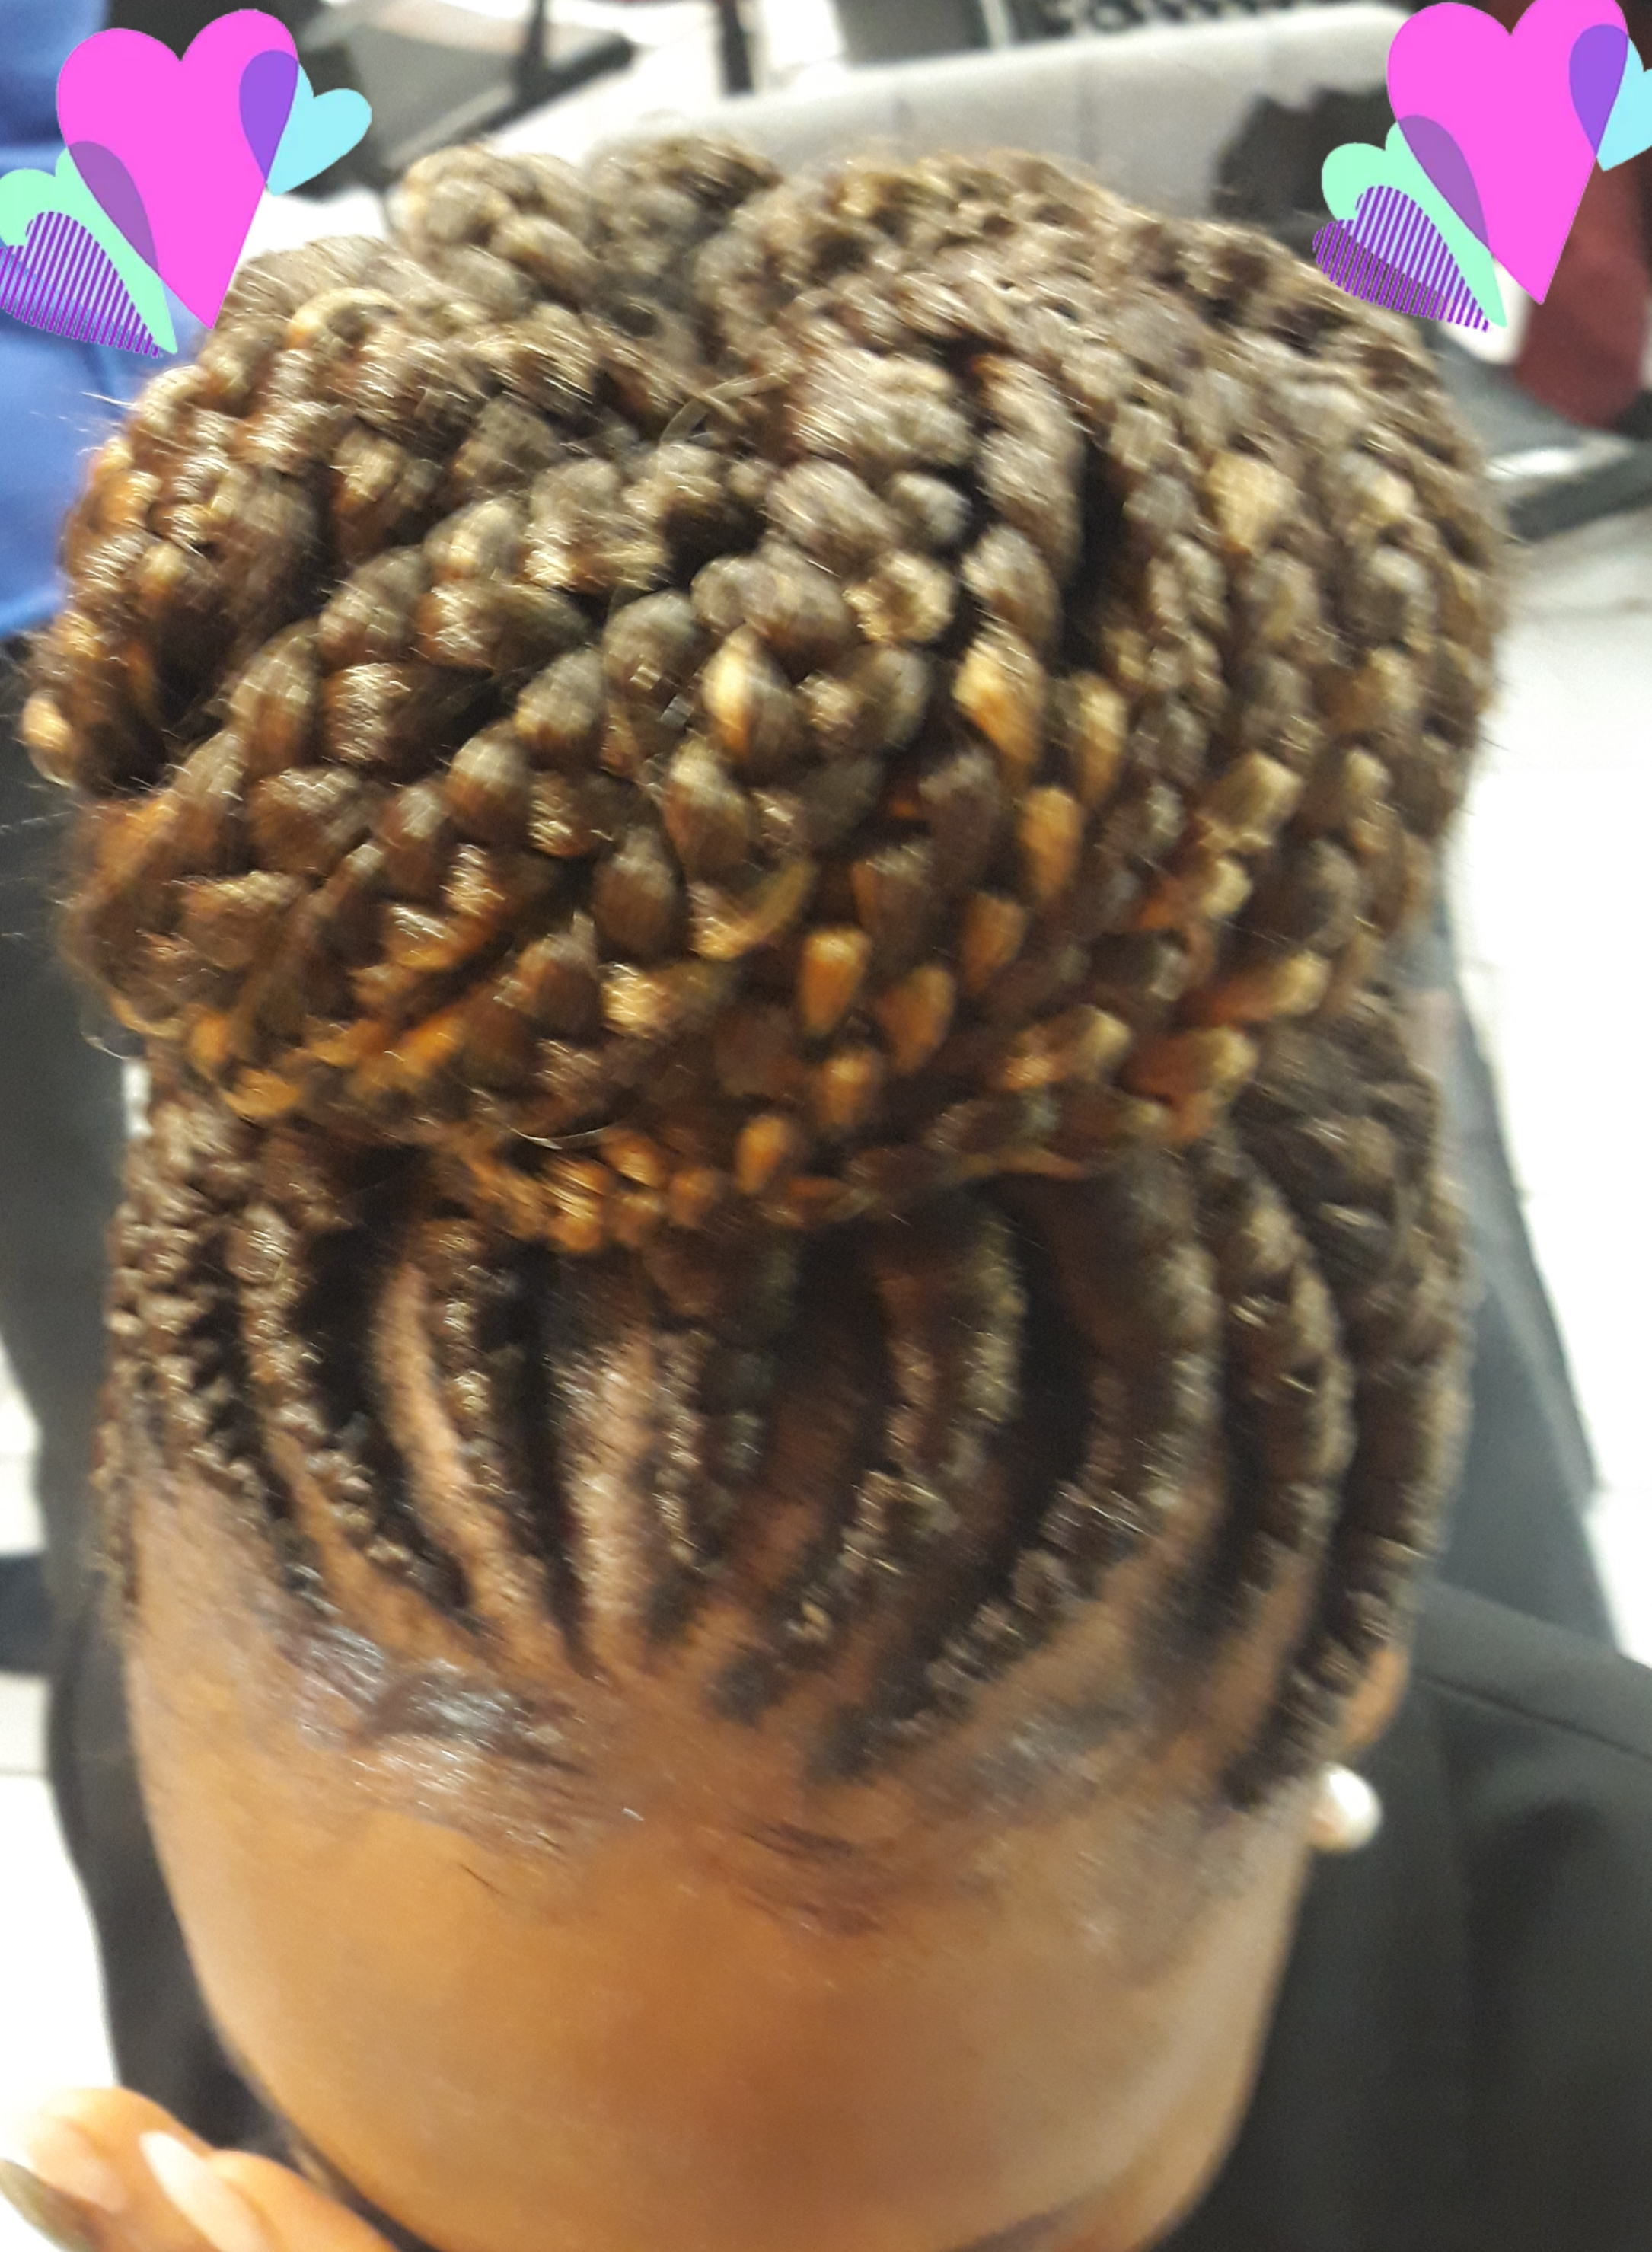 salon de coiffure afro tresse tresses box braids crochet braids vanilles tissages paris 75 77 78 91 92 93 94 95 OCJUEVQZ